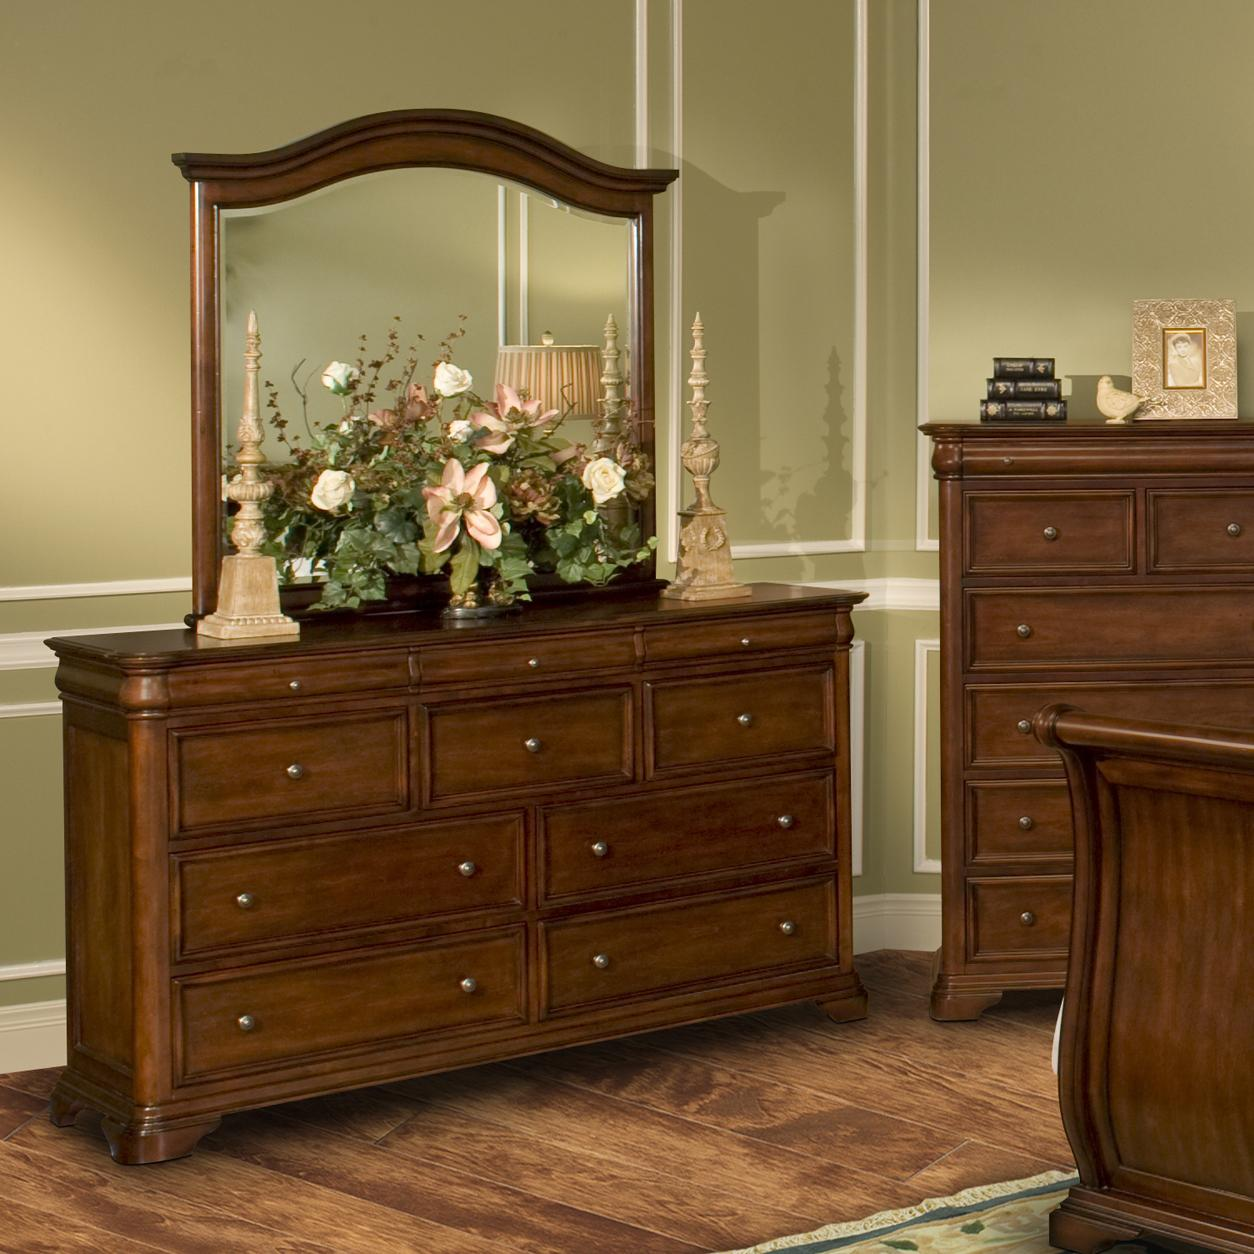 New Classic Whitley Court Dresser & Mirror Combo - Item Number: 00-002-050+060